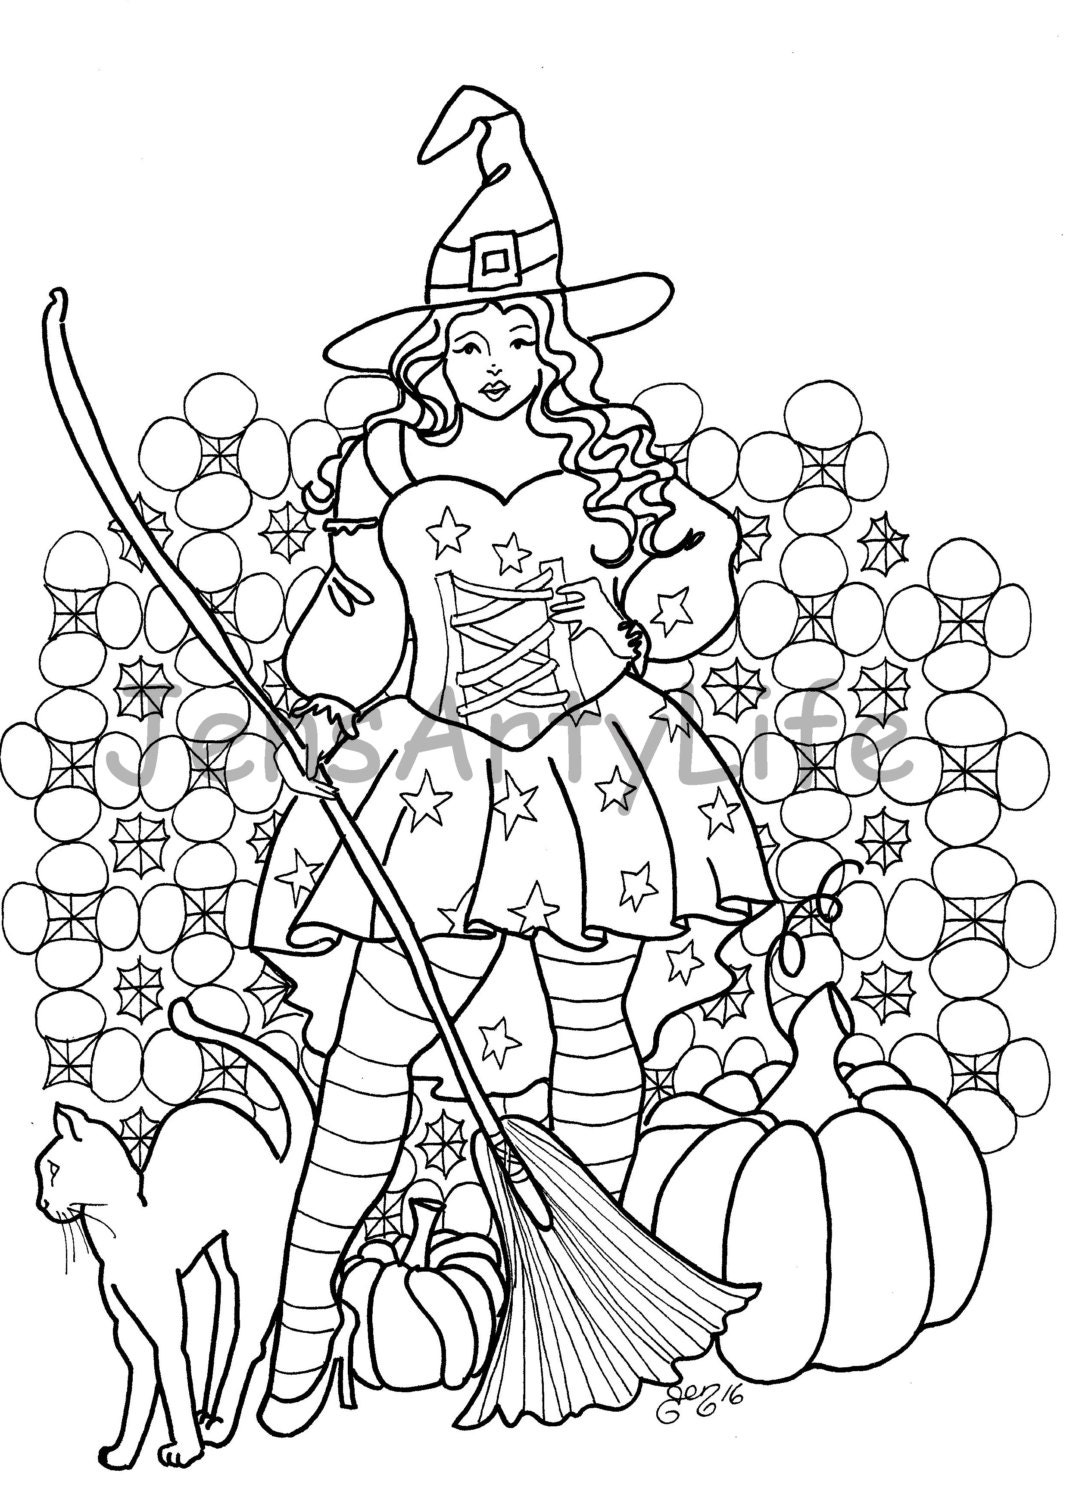 Big Beautiful Witch colouring page from JensArtyLife on